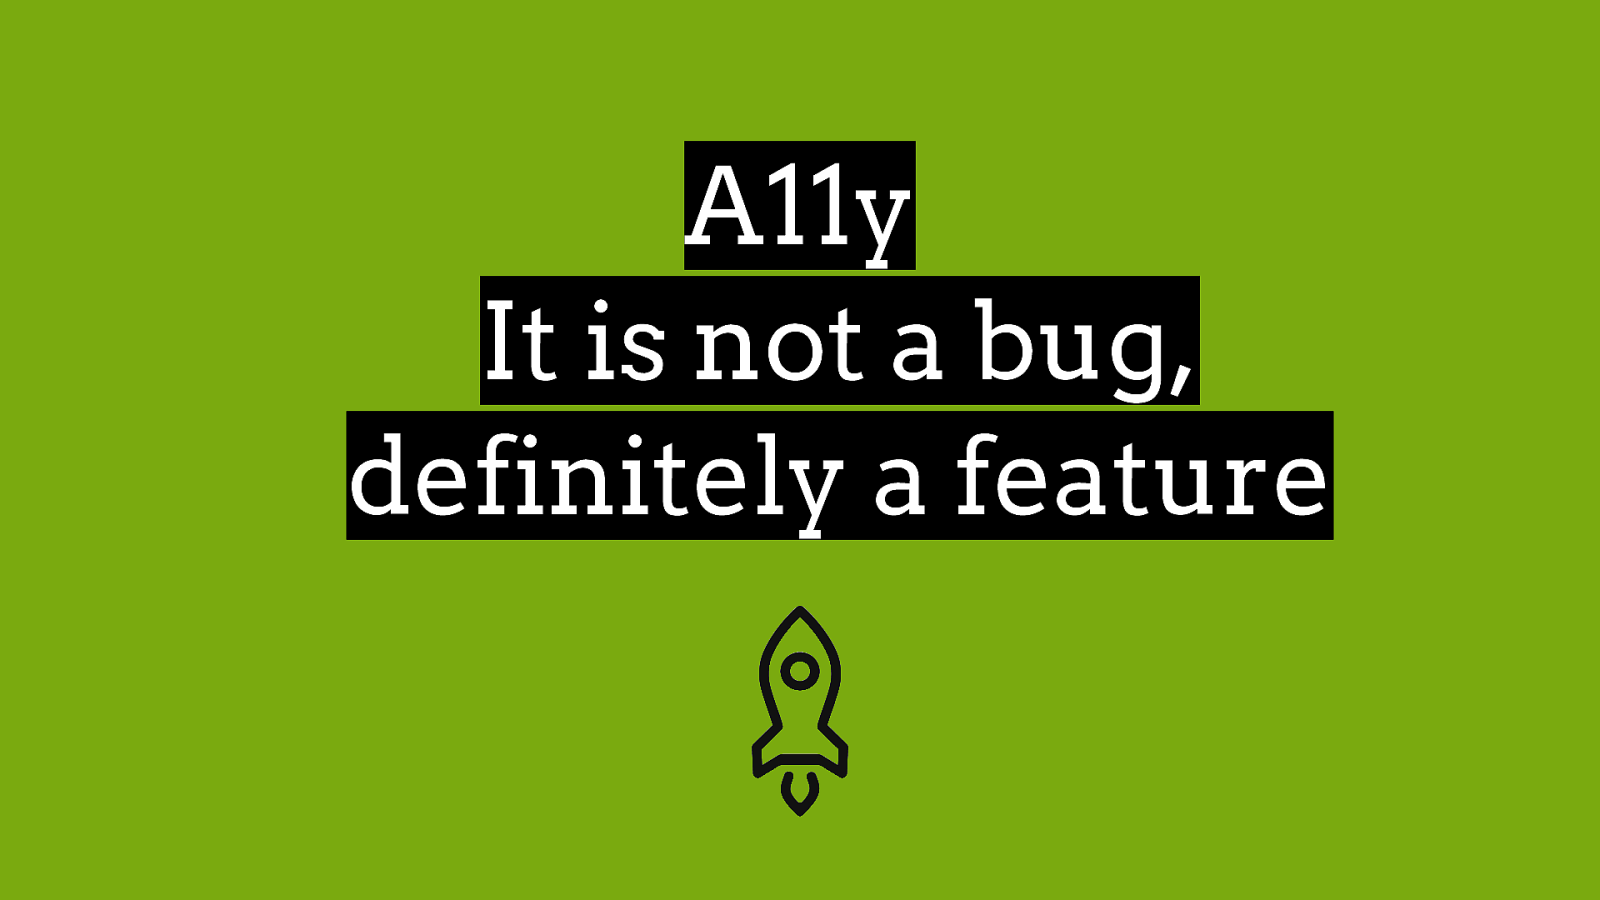 A11y is not a bug, definitely a feature